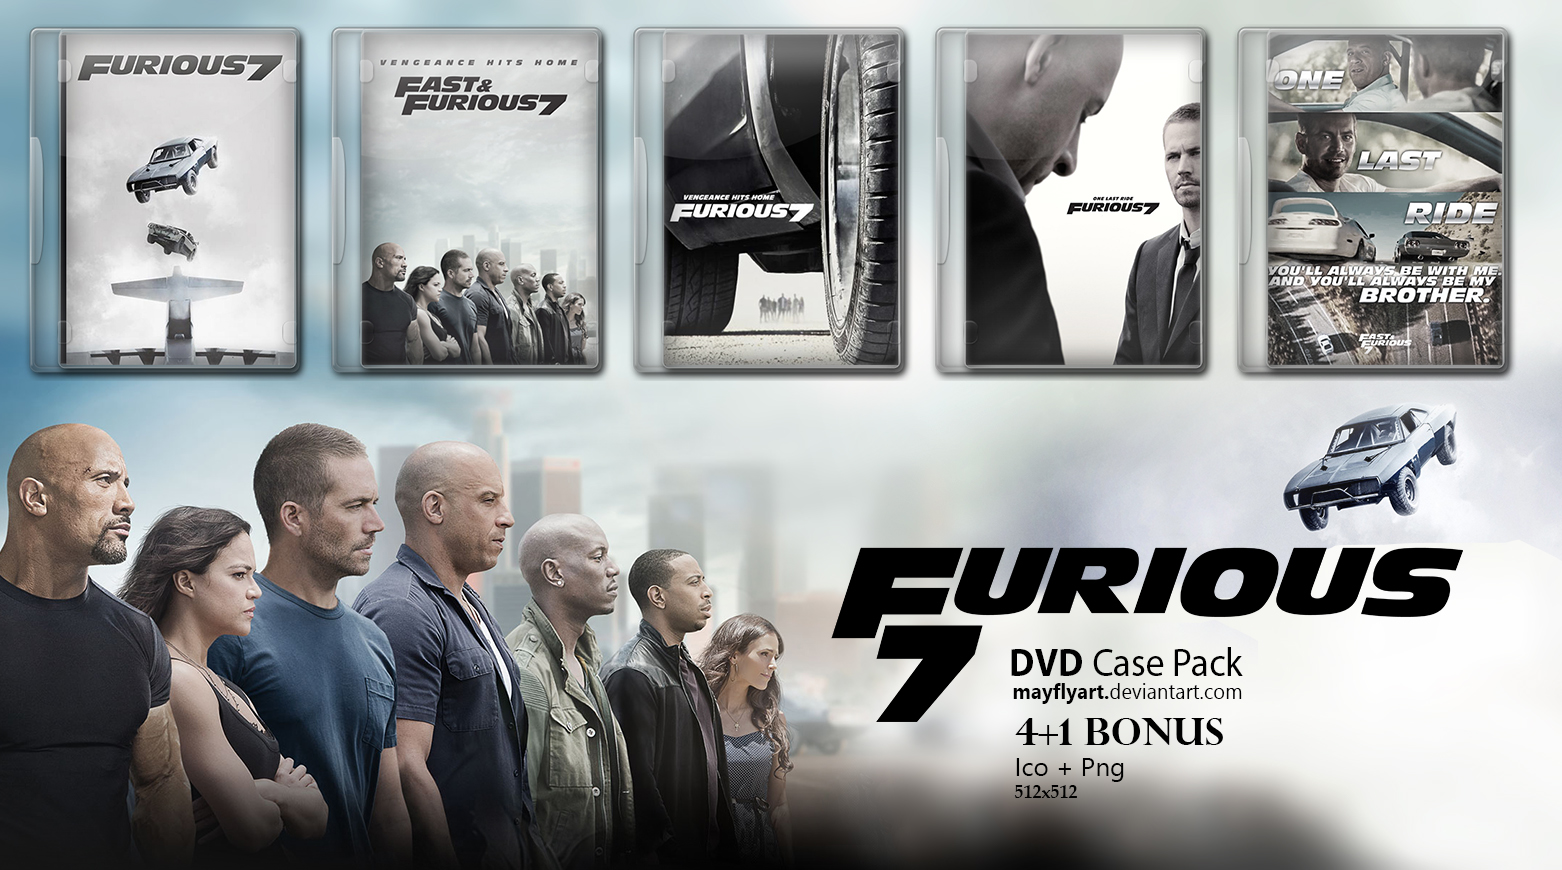 furious 7 dvd case pack by mayflyart on deviantart. Black Bedroom Furniture Sets. Home Design Ideas